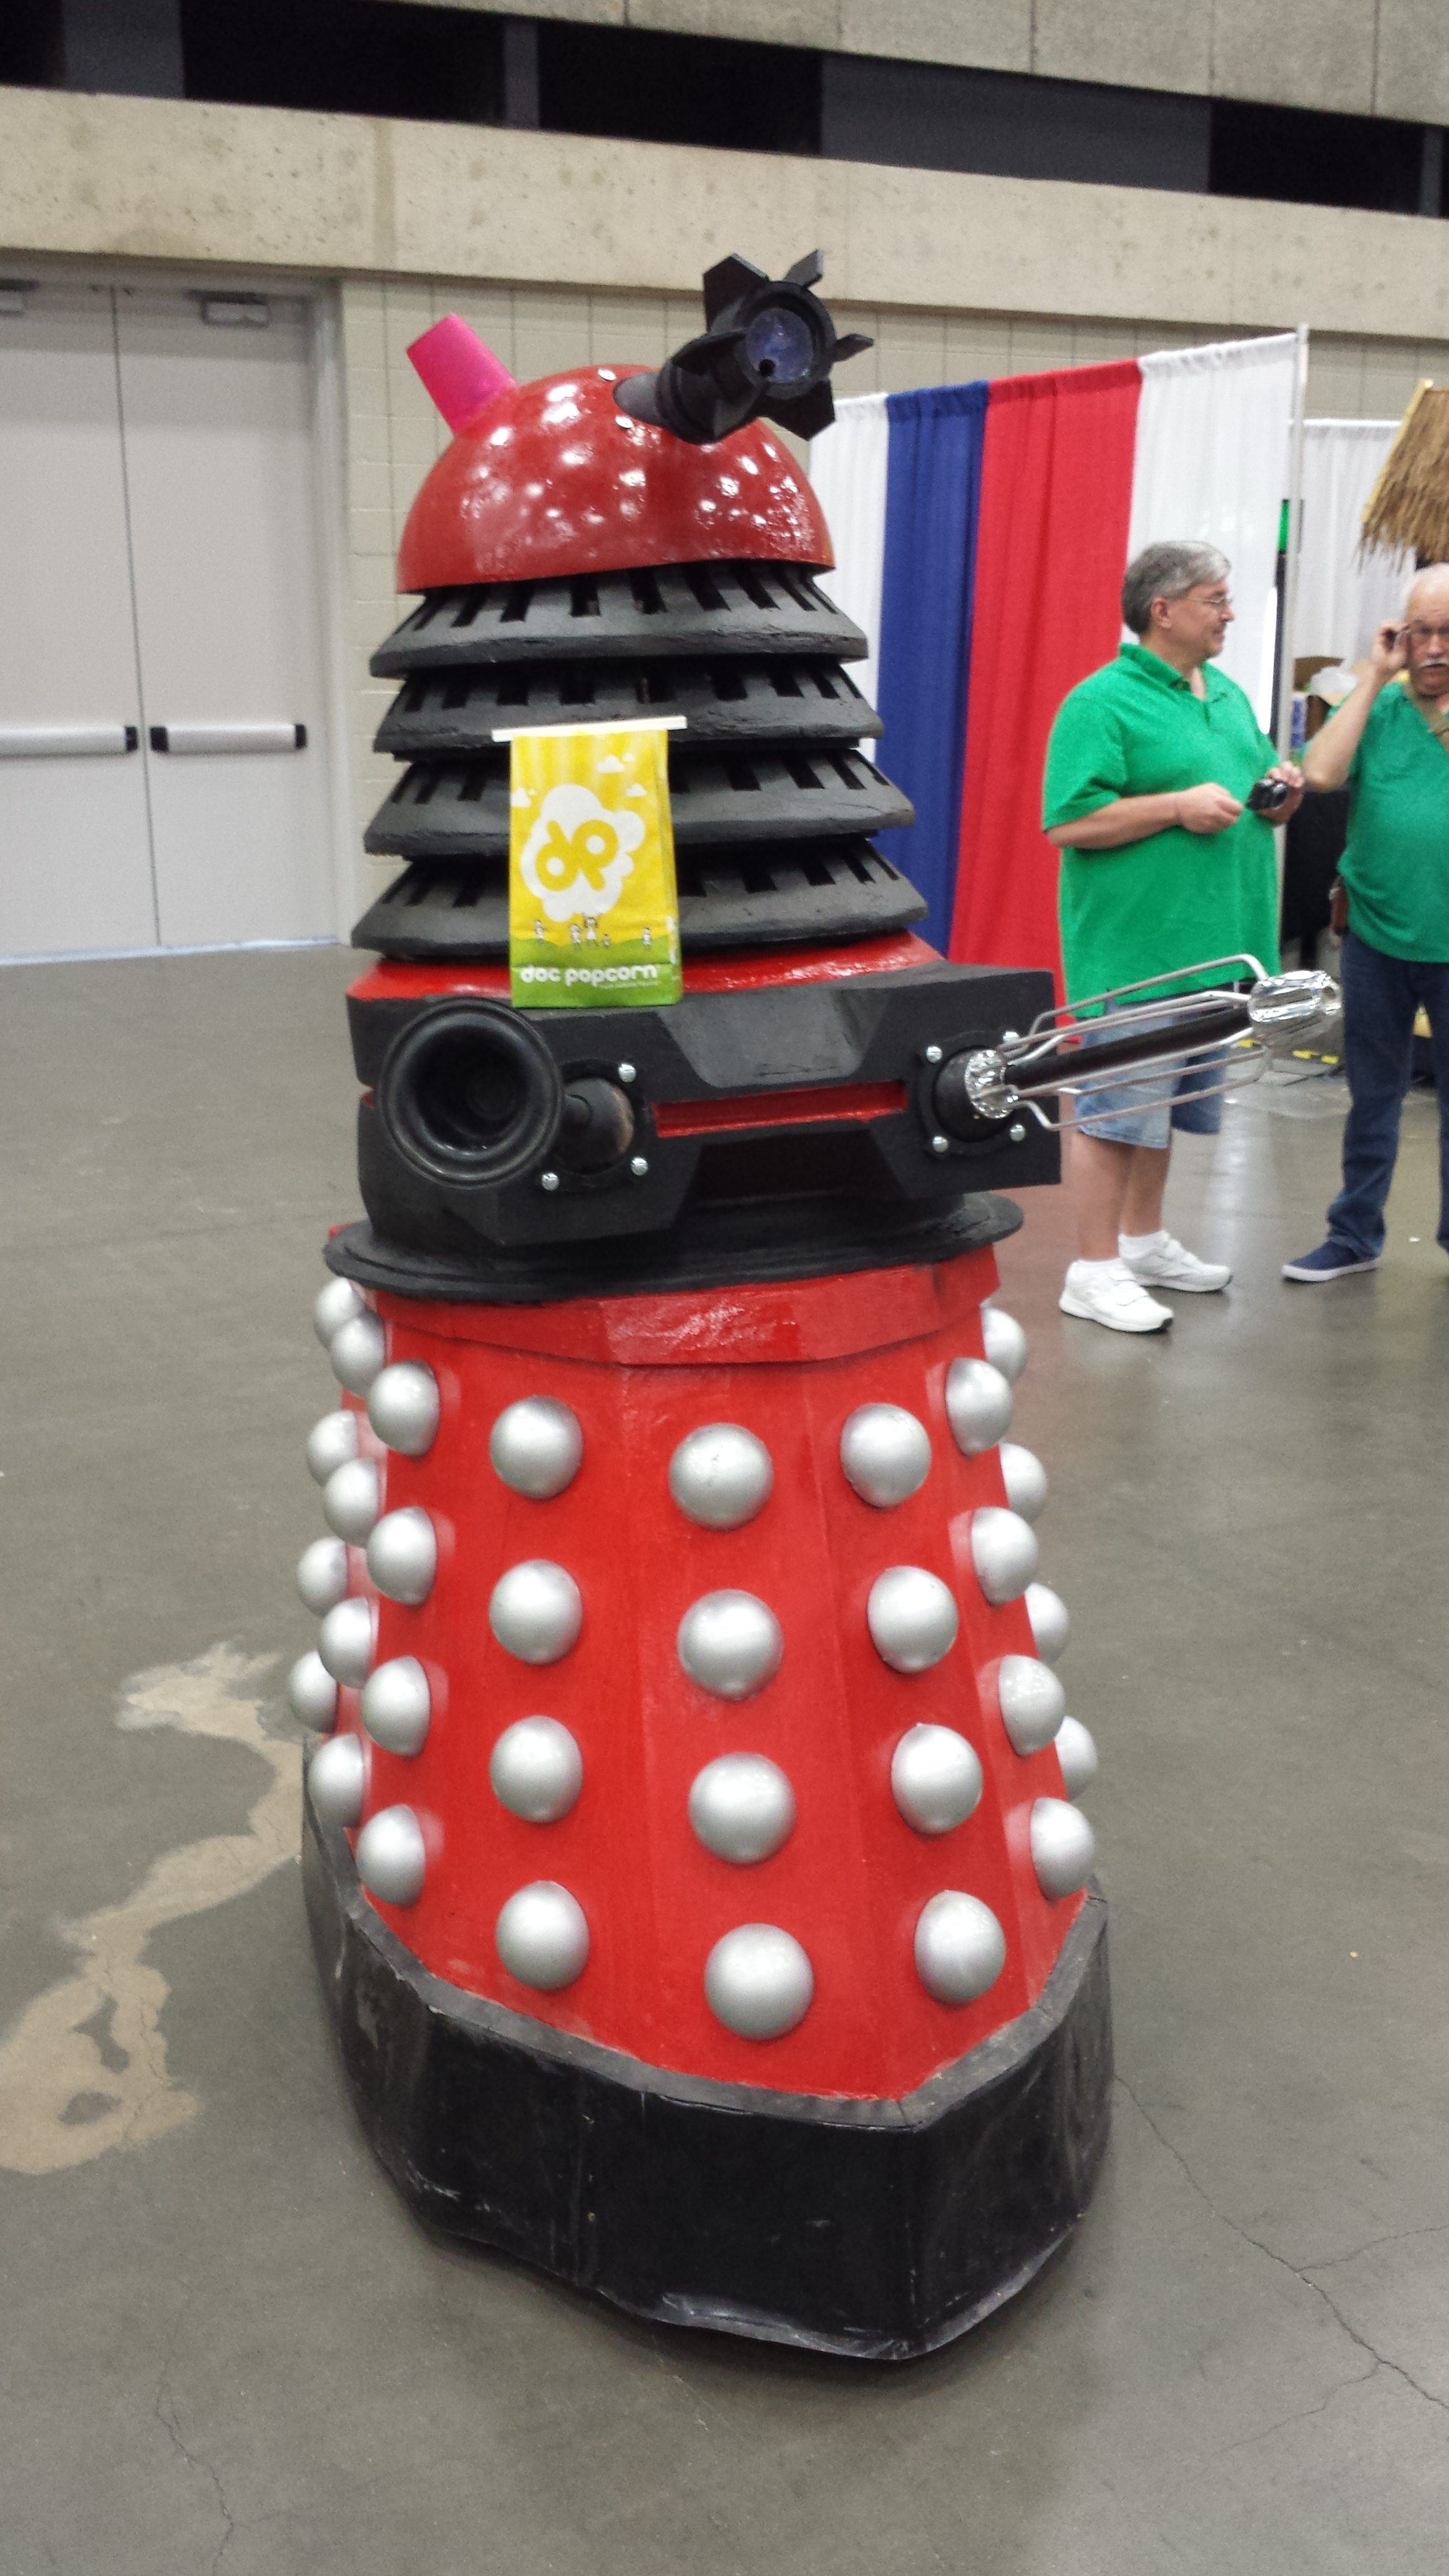 Even Daleks will stop 'exterminating' to enjoy some Doc Popcorn!